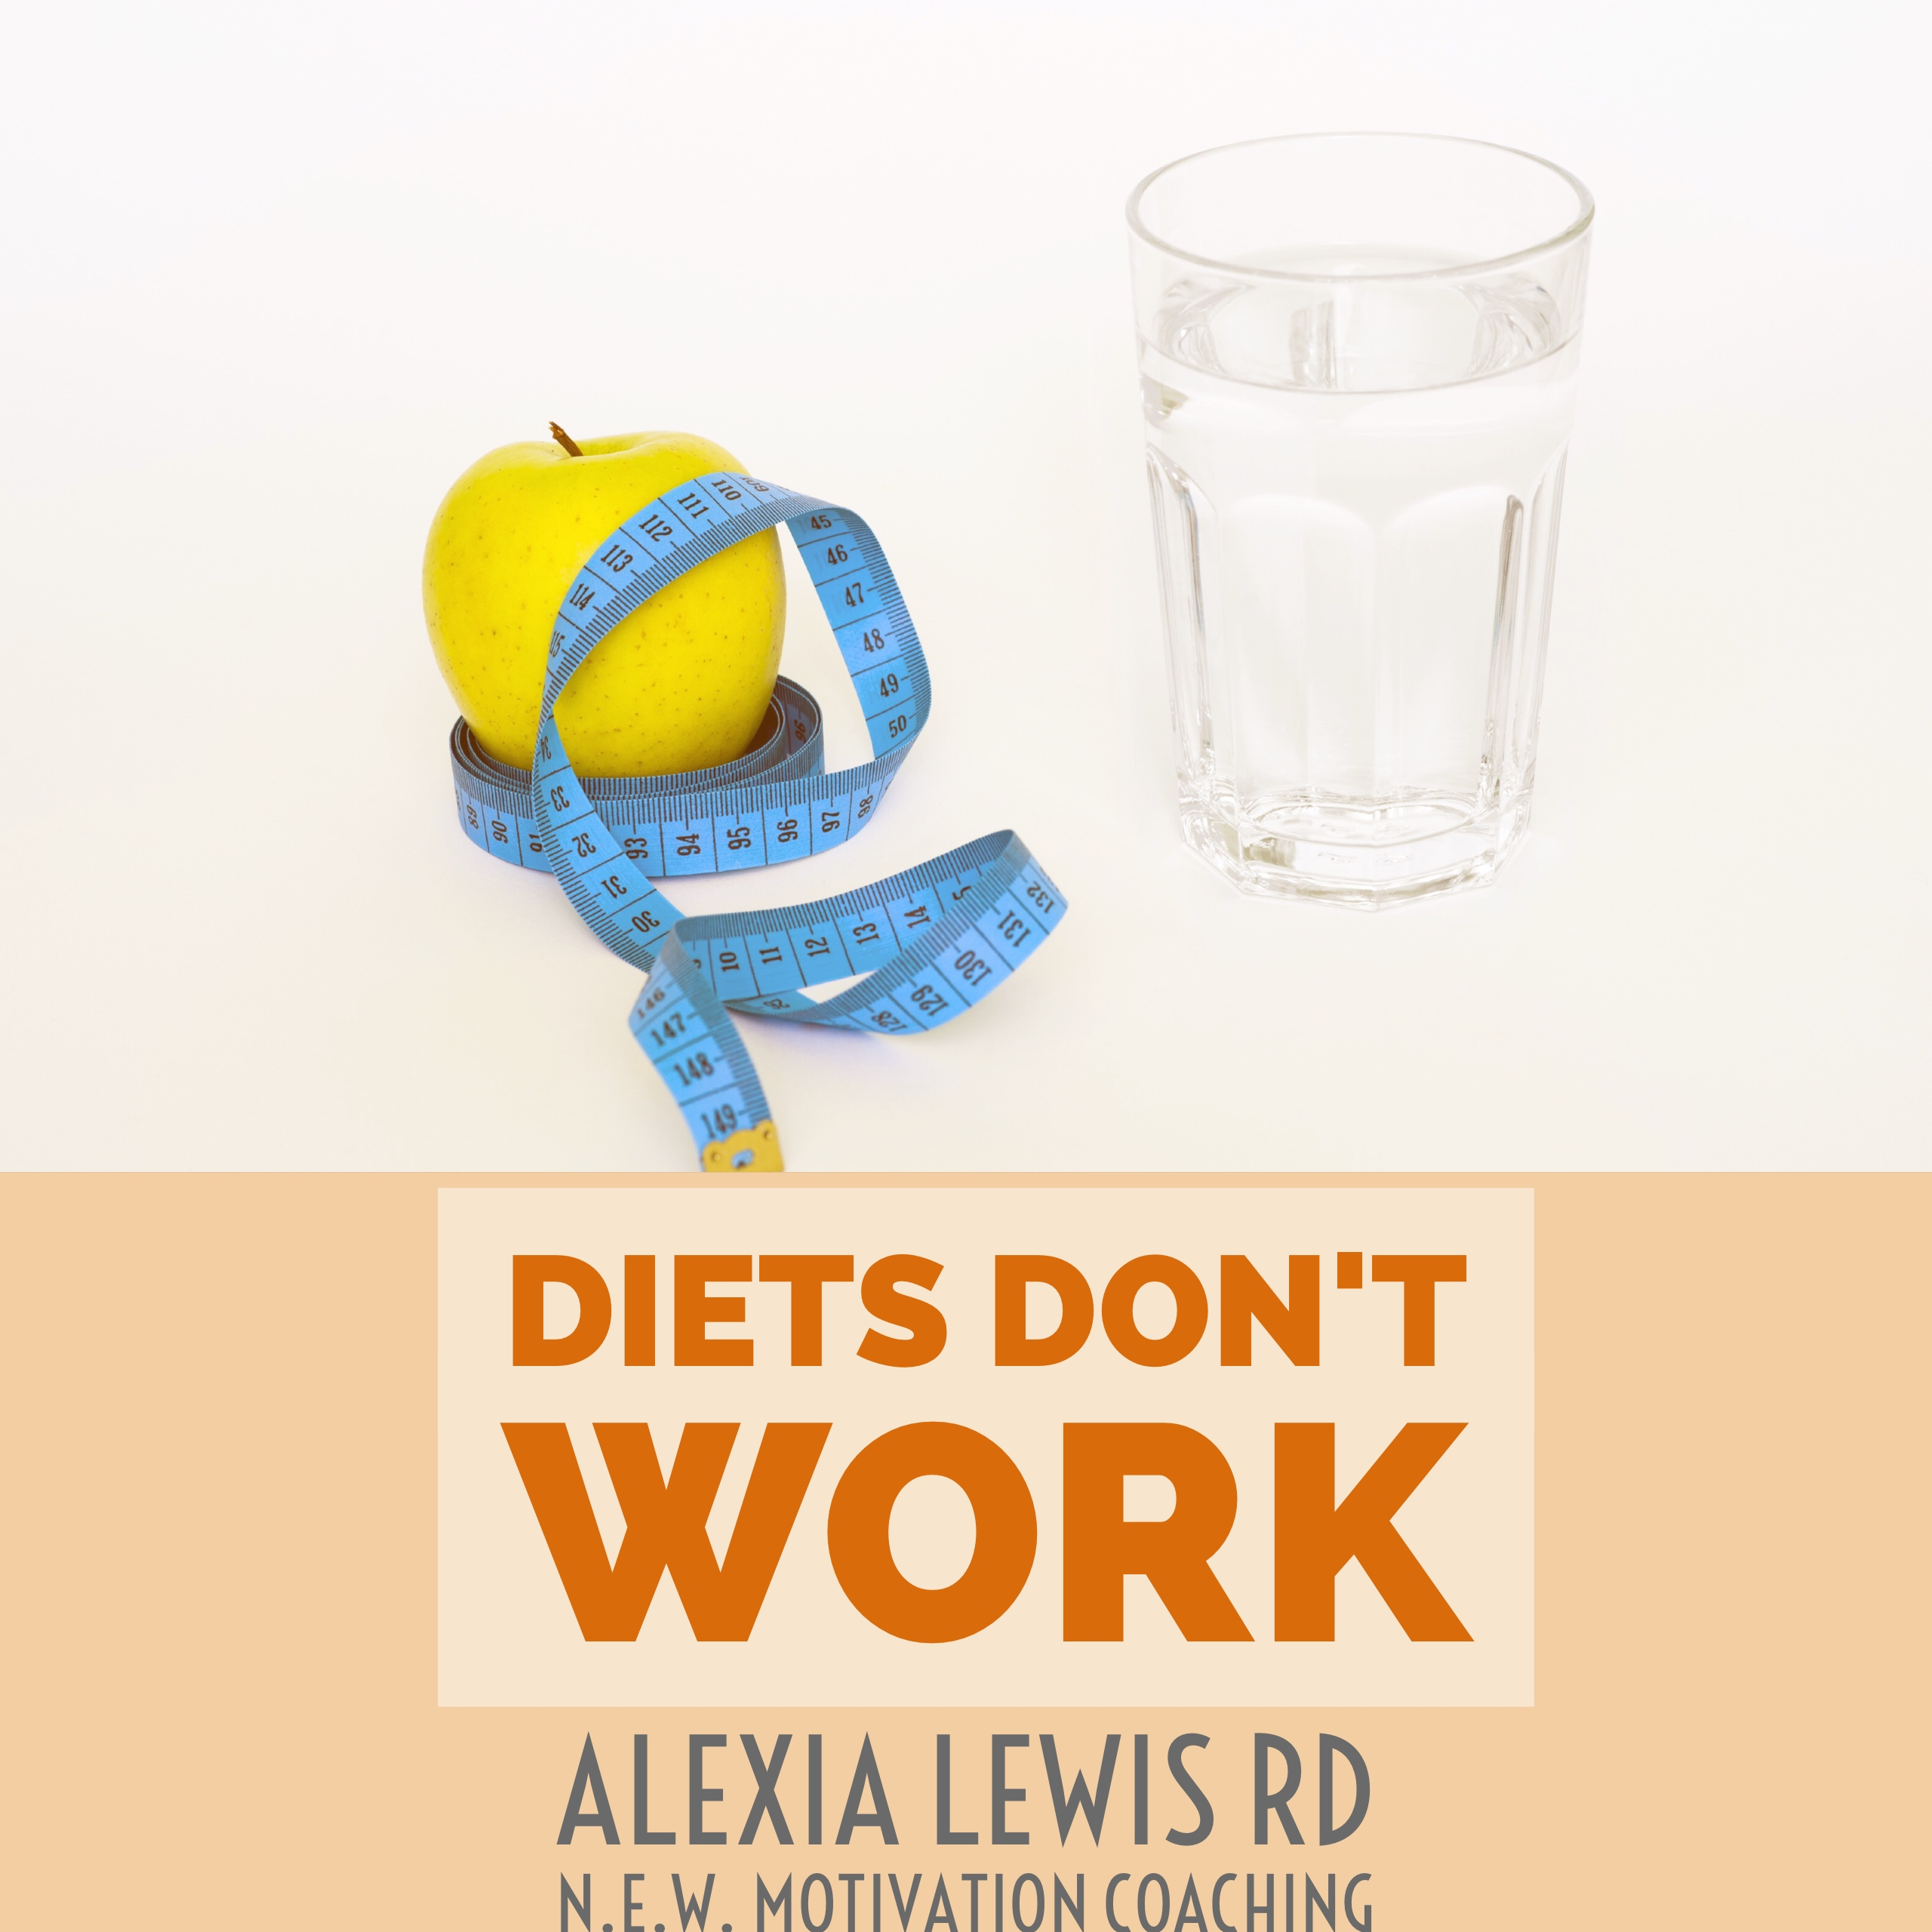 If Diets Don't Work, How Can a Health Coach Help Me?